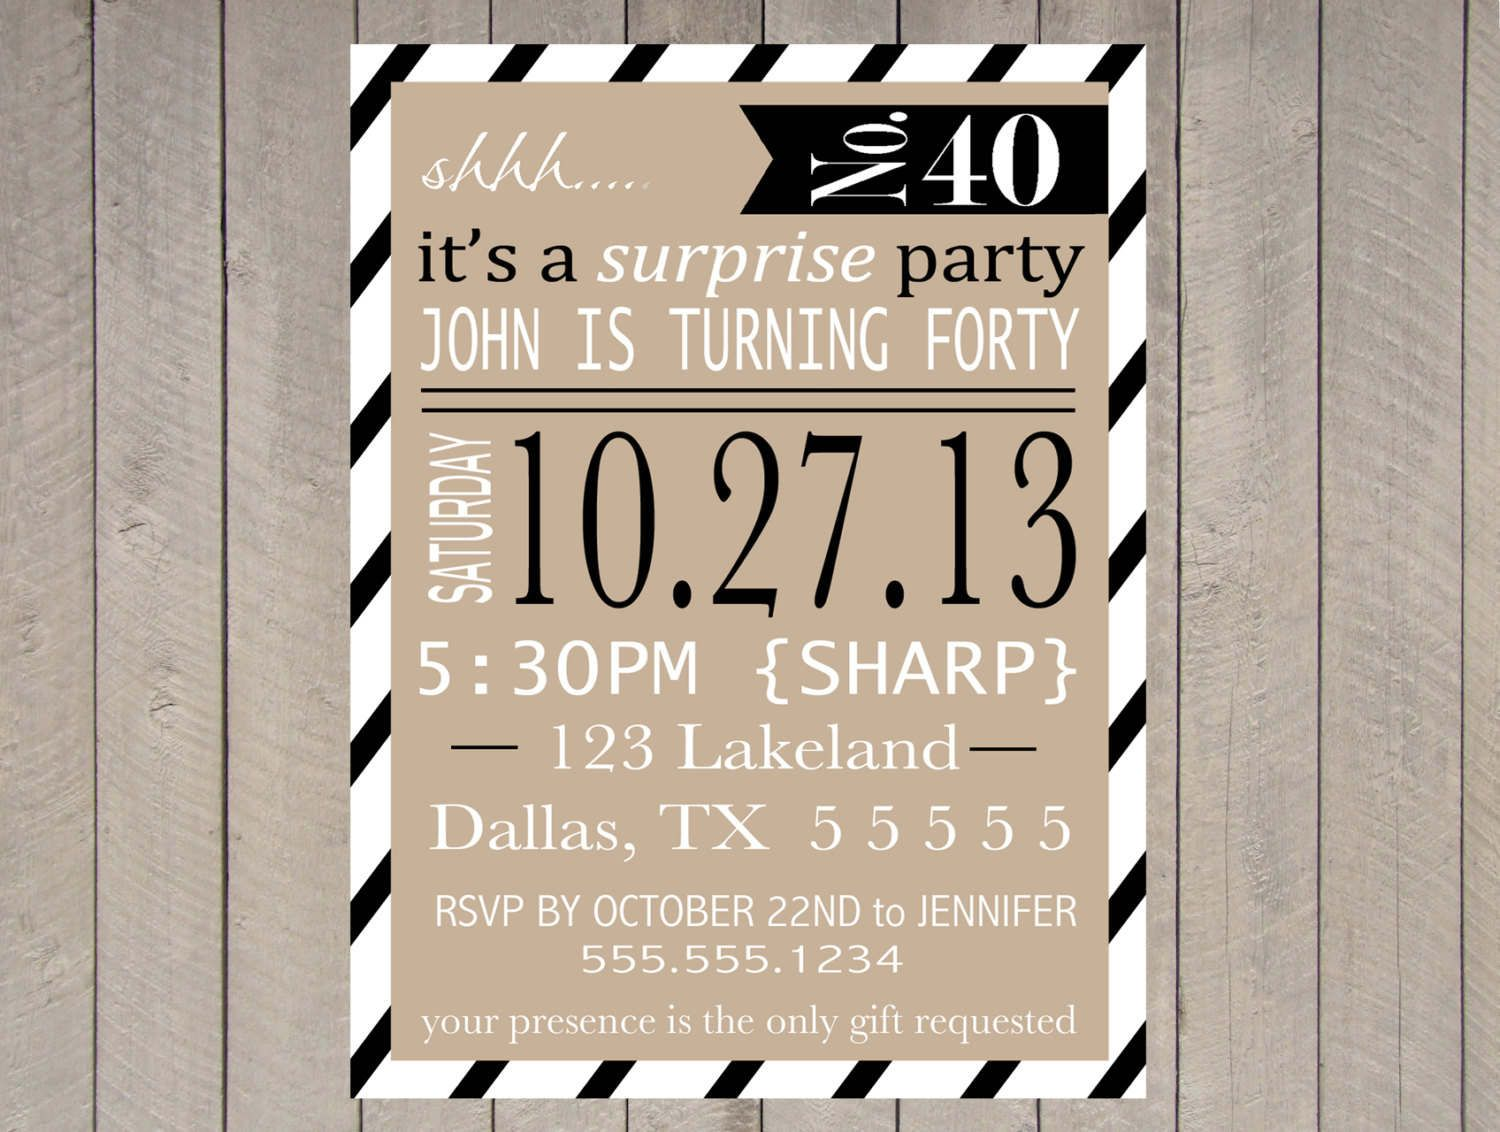 Printable Surprise Party Invitation Template Surprise Birthday Invitations Party Invite Template Surprise Birthday Party Invitations